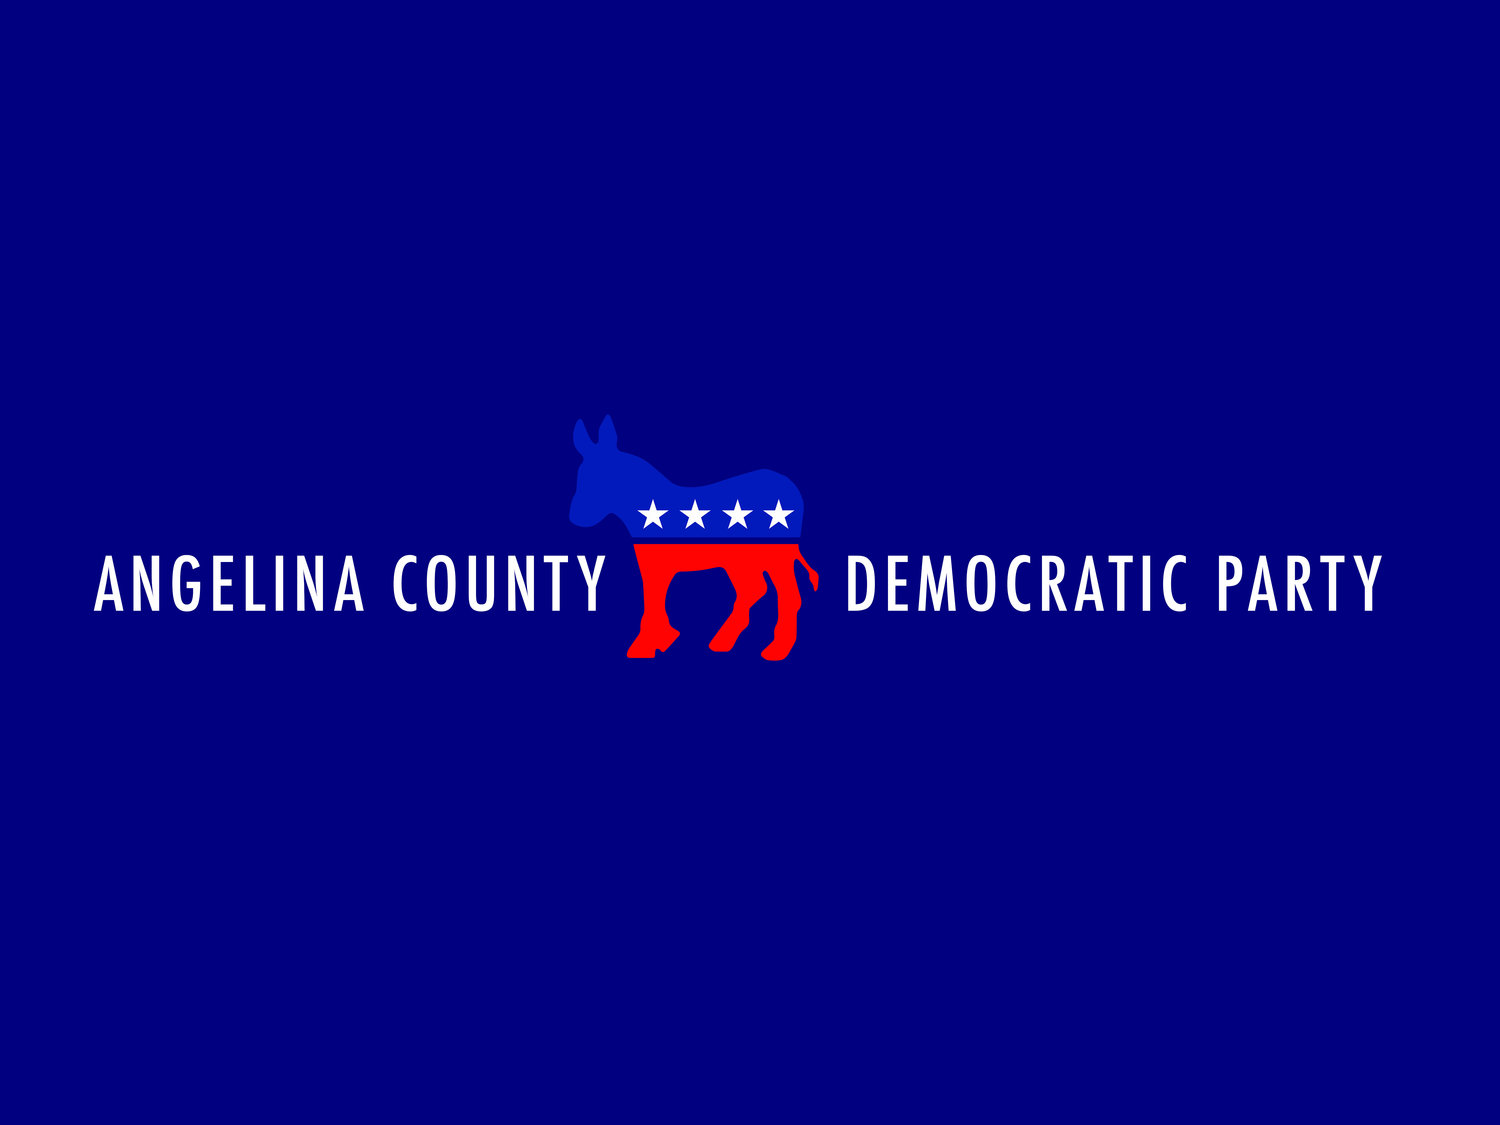 About Angelina County Democratic Party